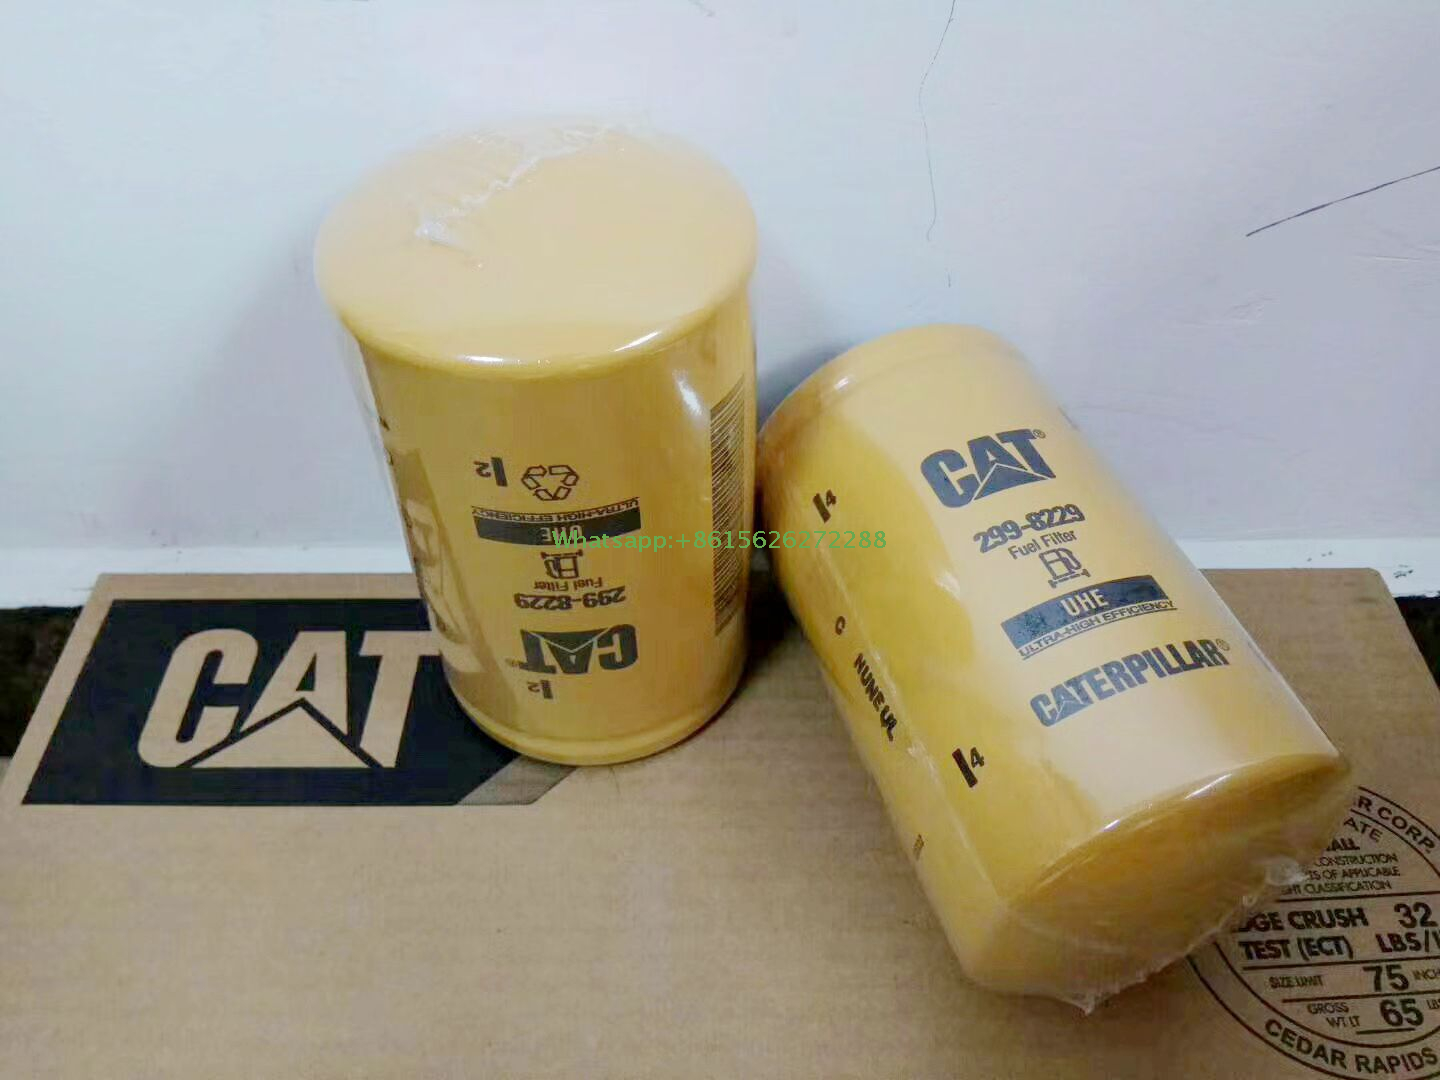 Caterpillar filter as-fu 2998229 universal for many models